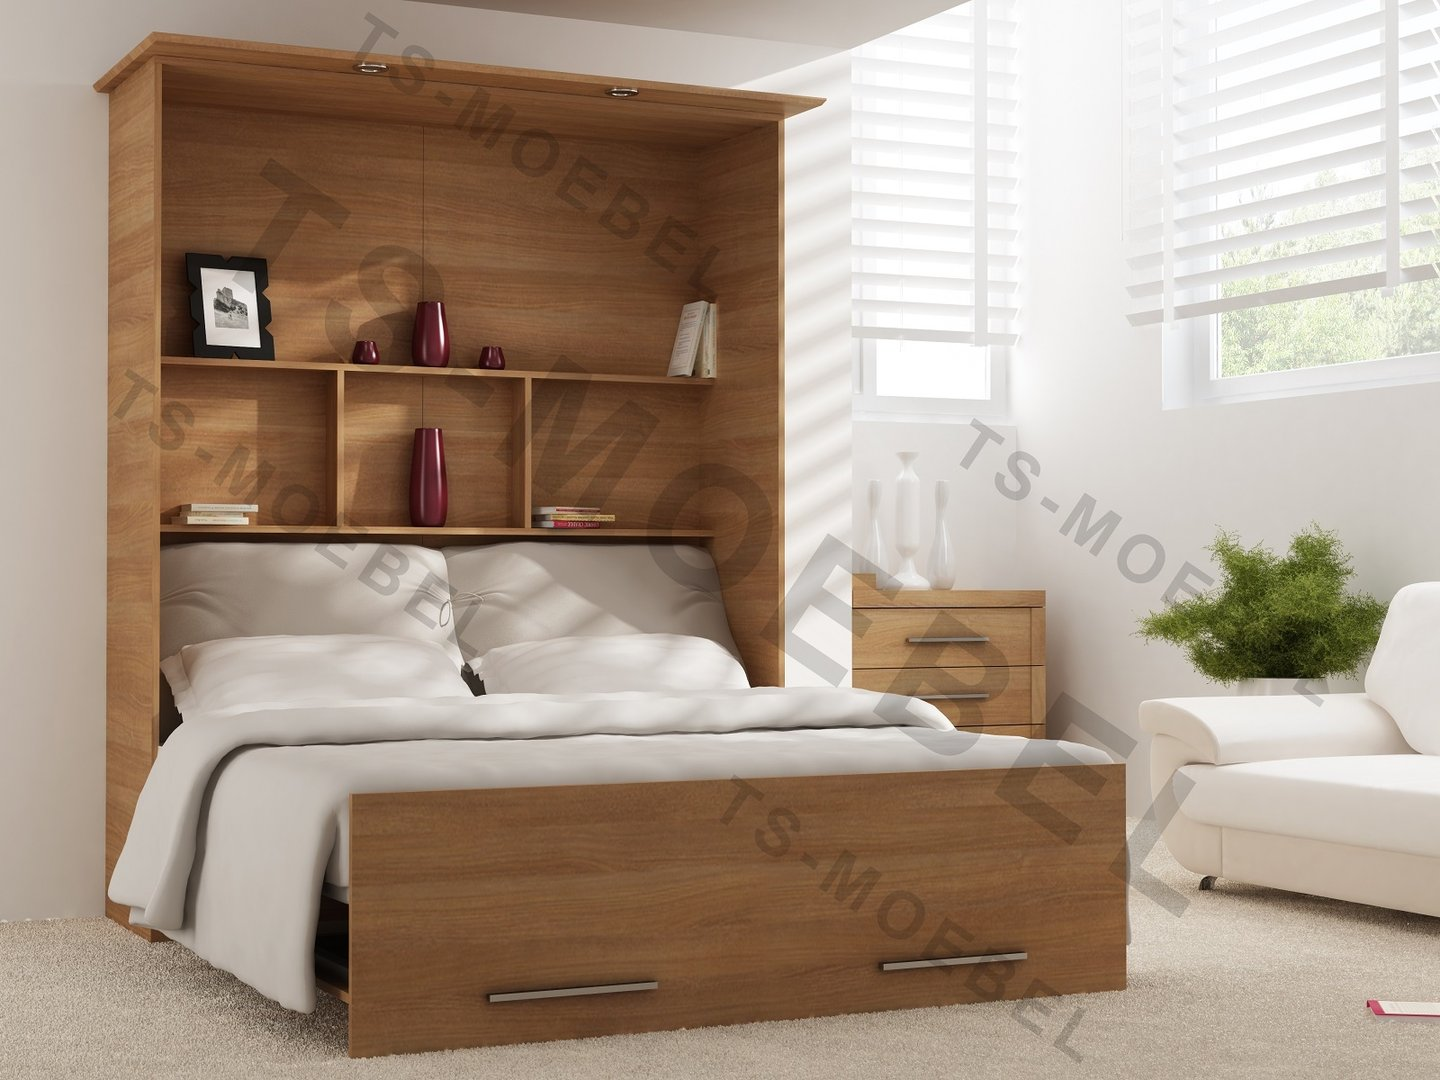 wandbett 50 w 1 160x200 cm holzfarbe erle hochkant. Black Bedroom Furniture Sets. Home Design Ideas